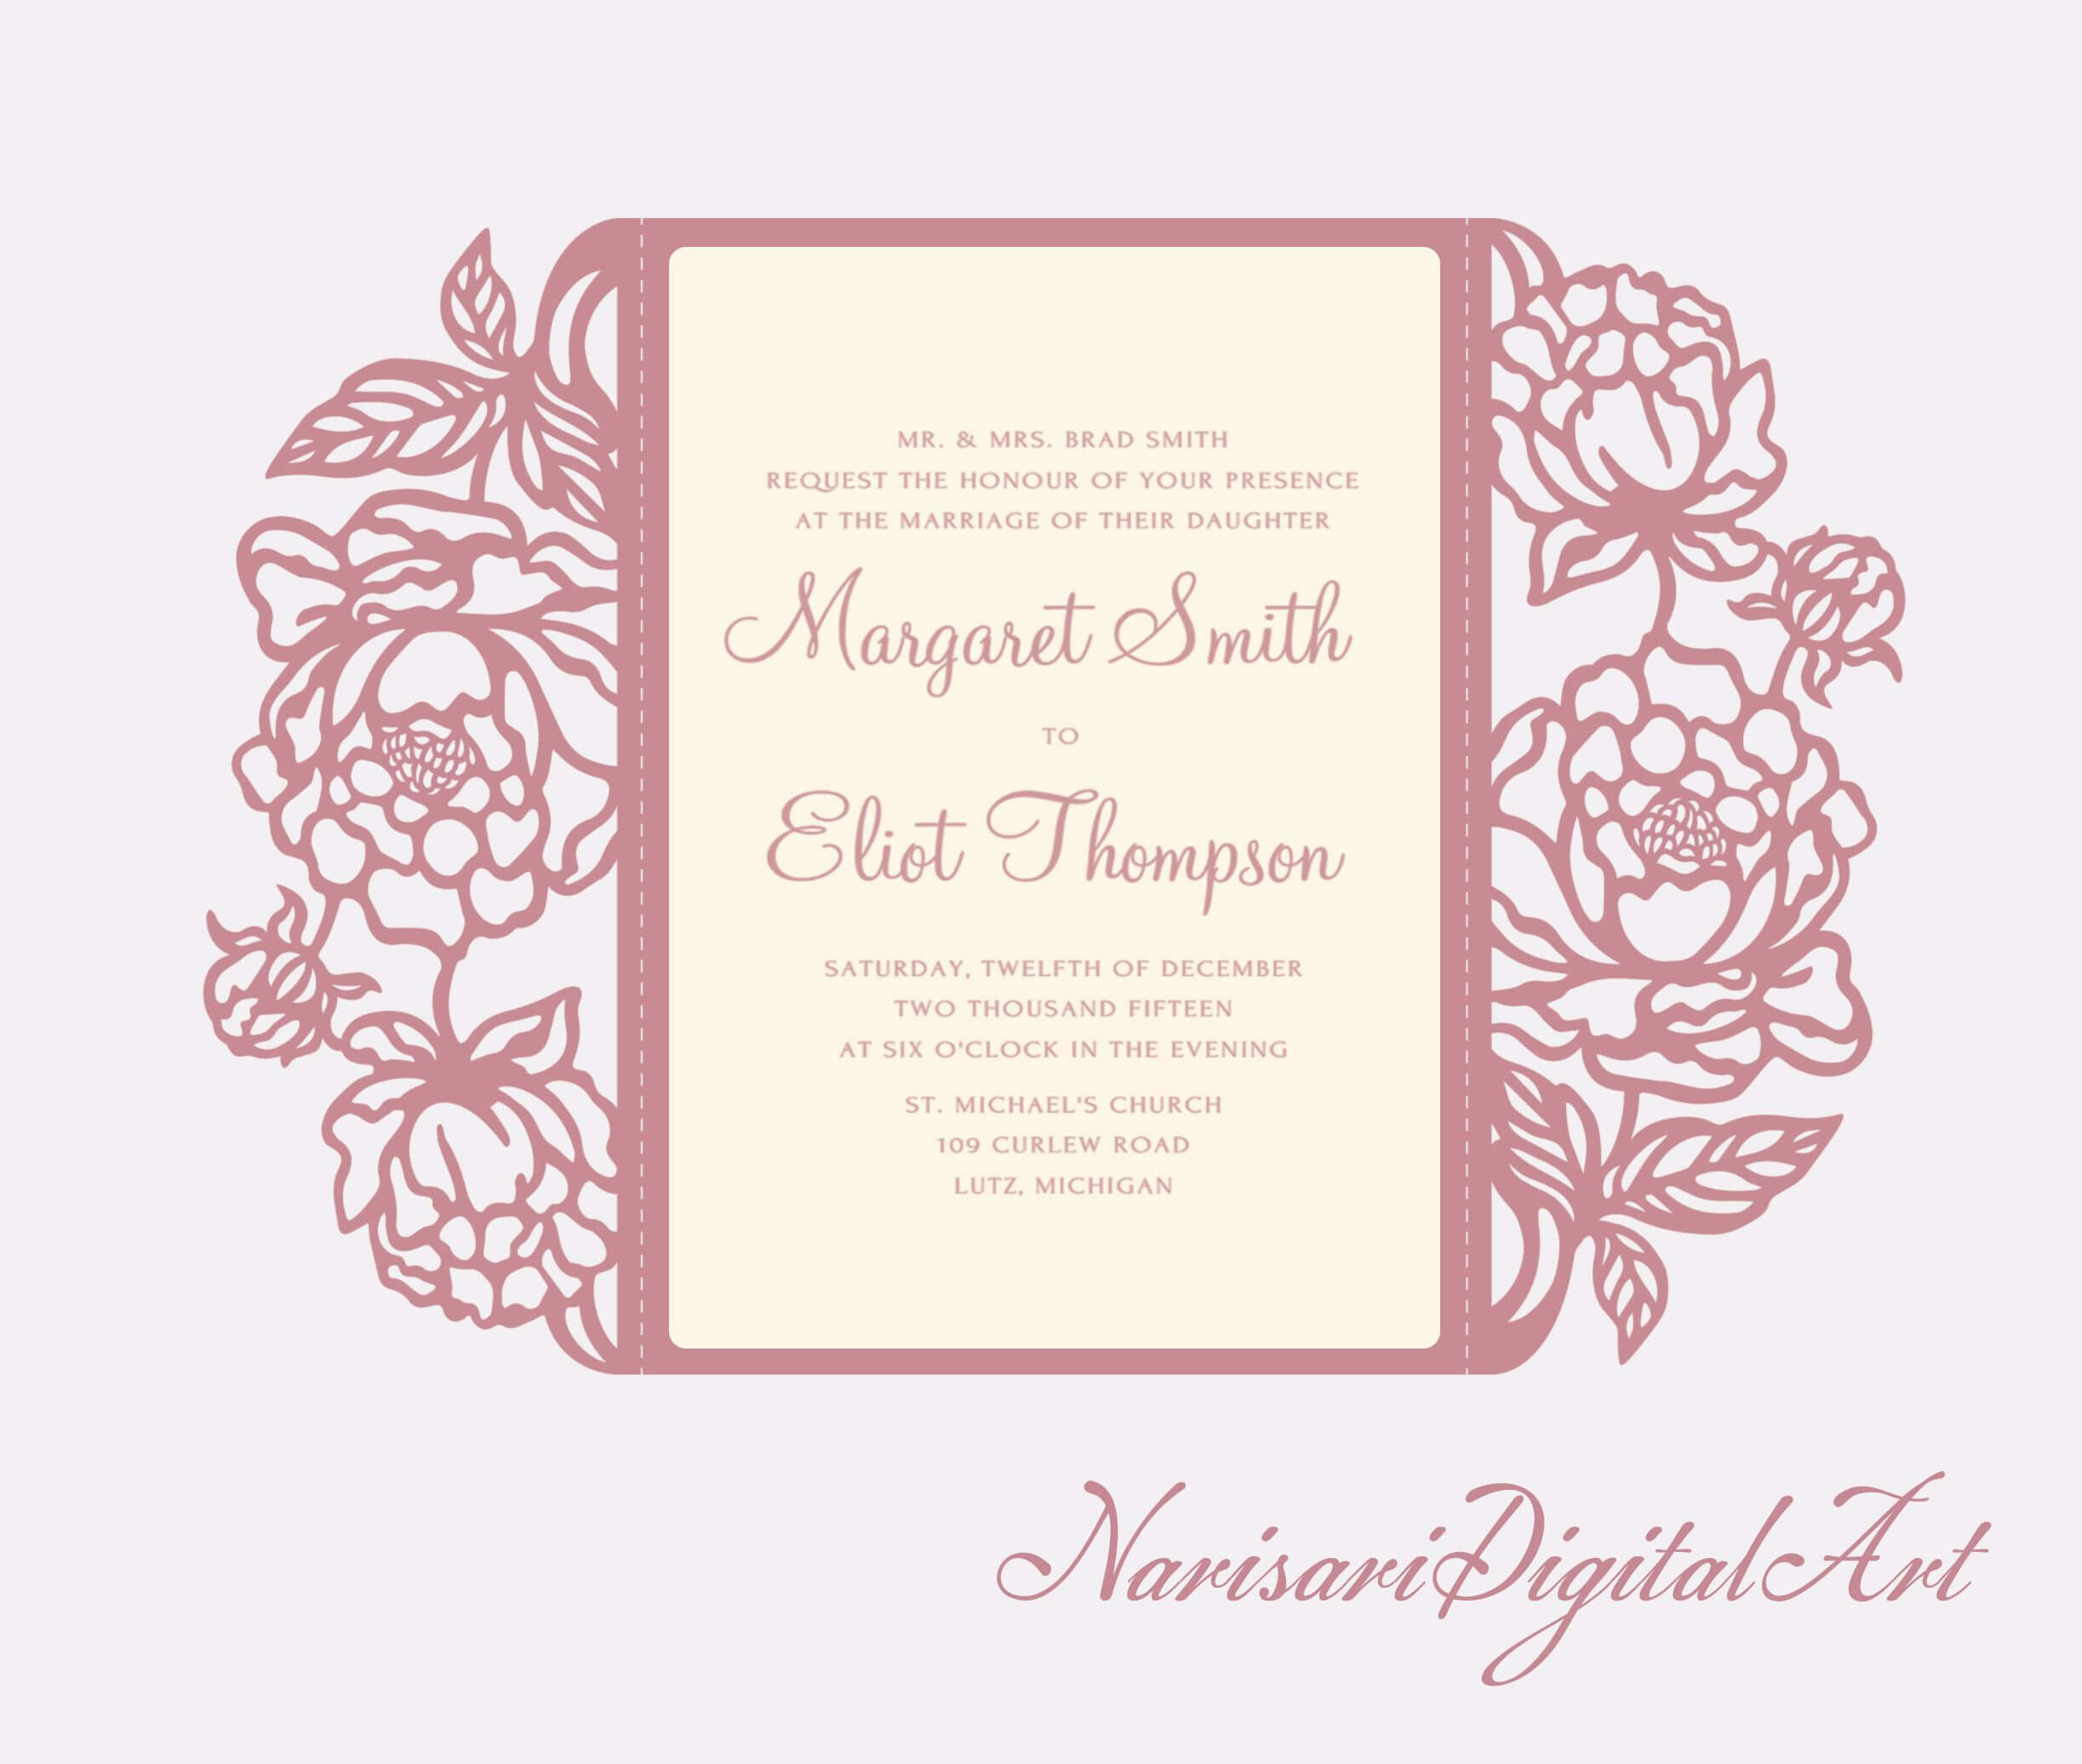 Pin On Wedding Favors Inside Silhouette Cameo Card Templates